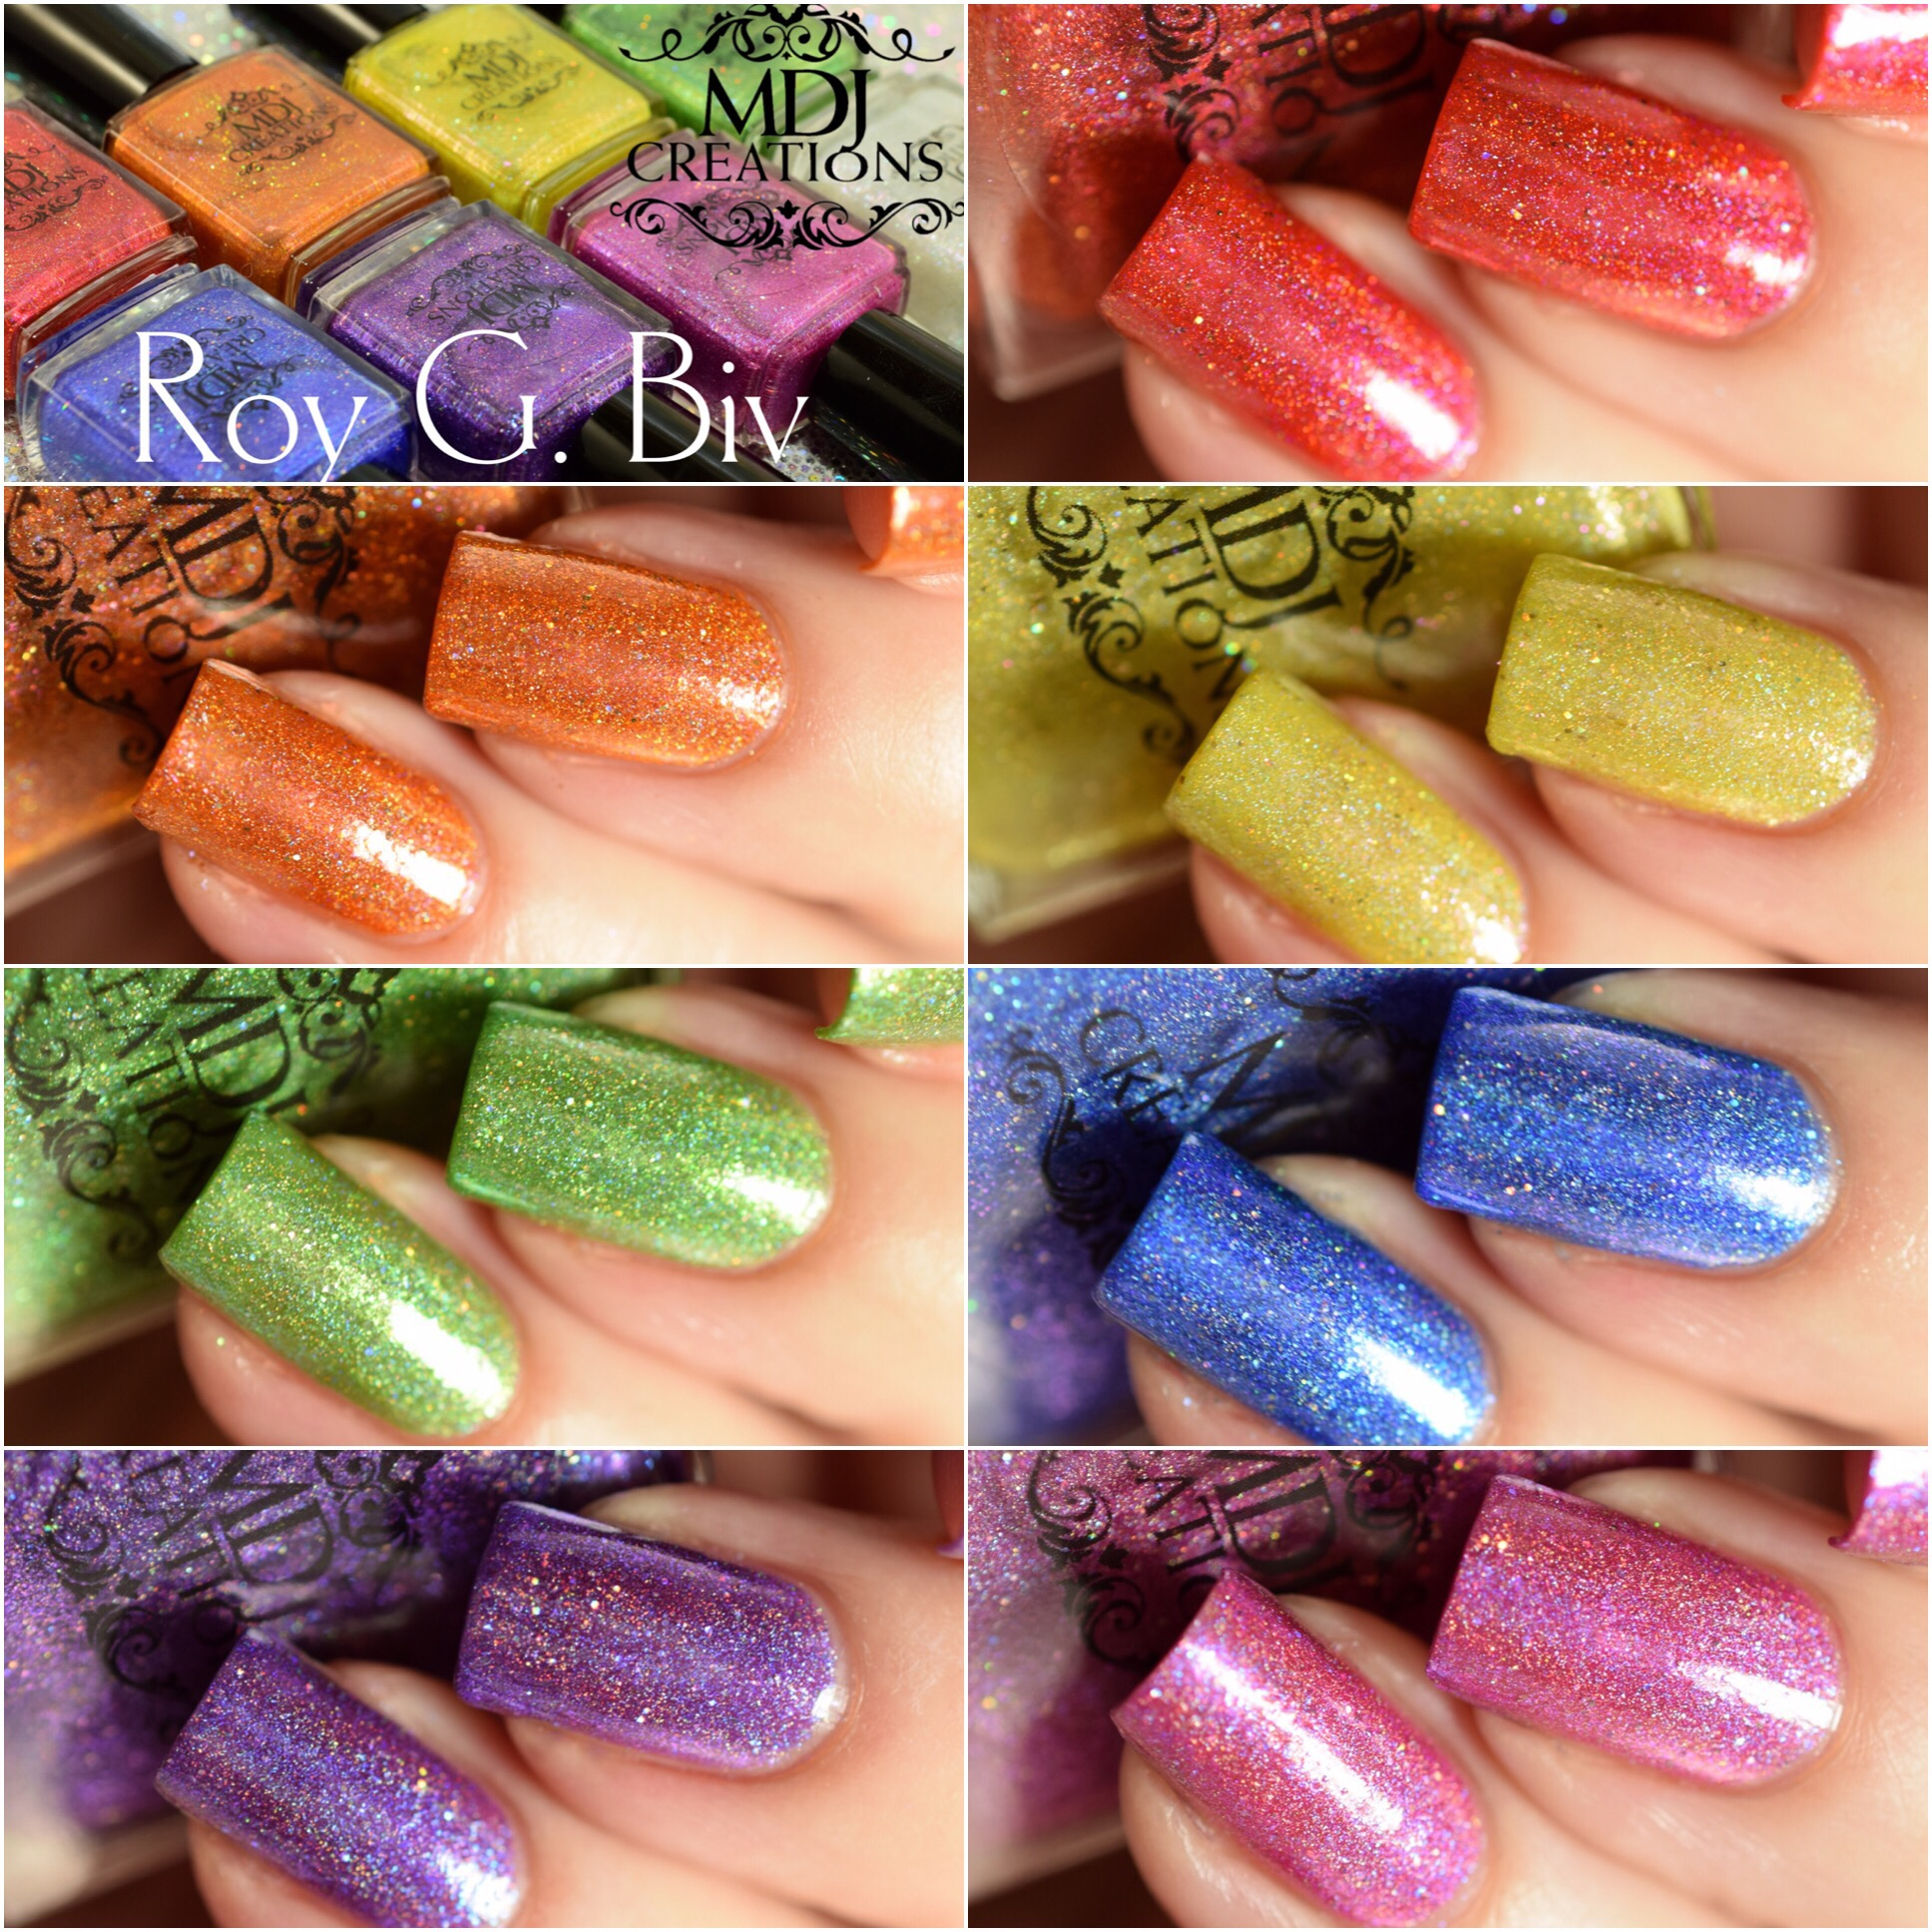 MDJ Creations Roy G. Biv Rainbow Collection